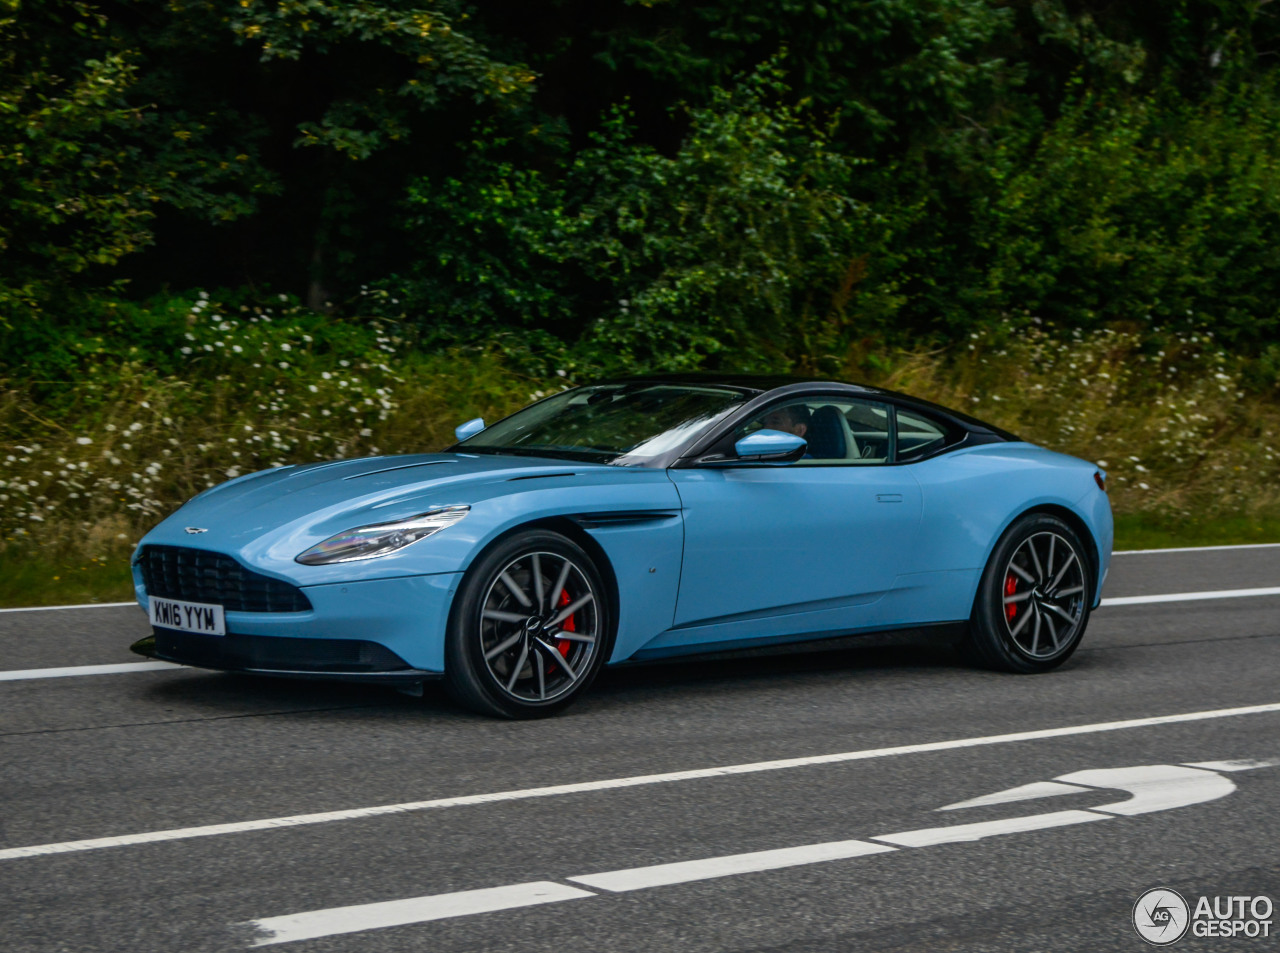 Aston Martin Db11 9 August 2016 Autogespot